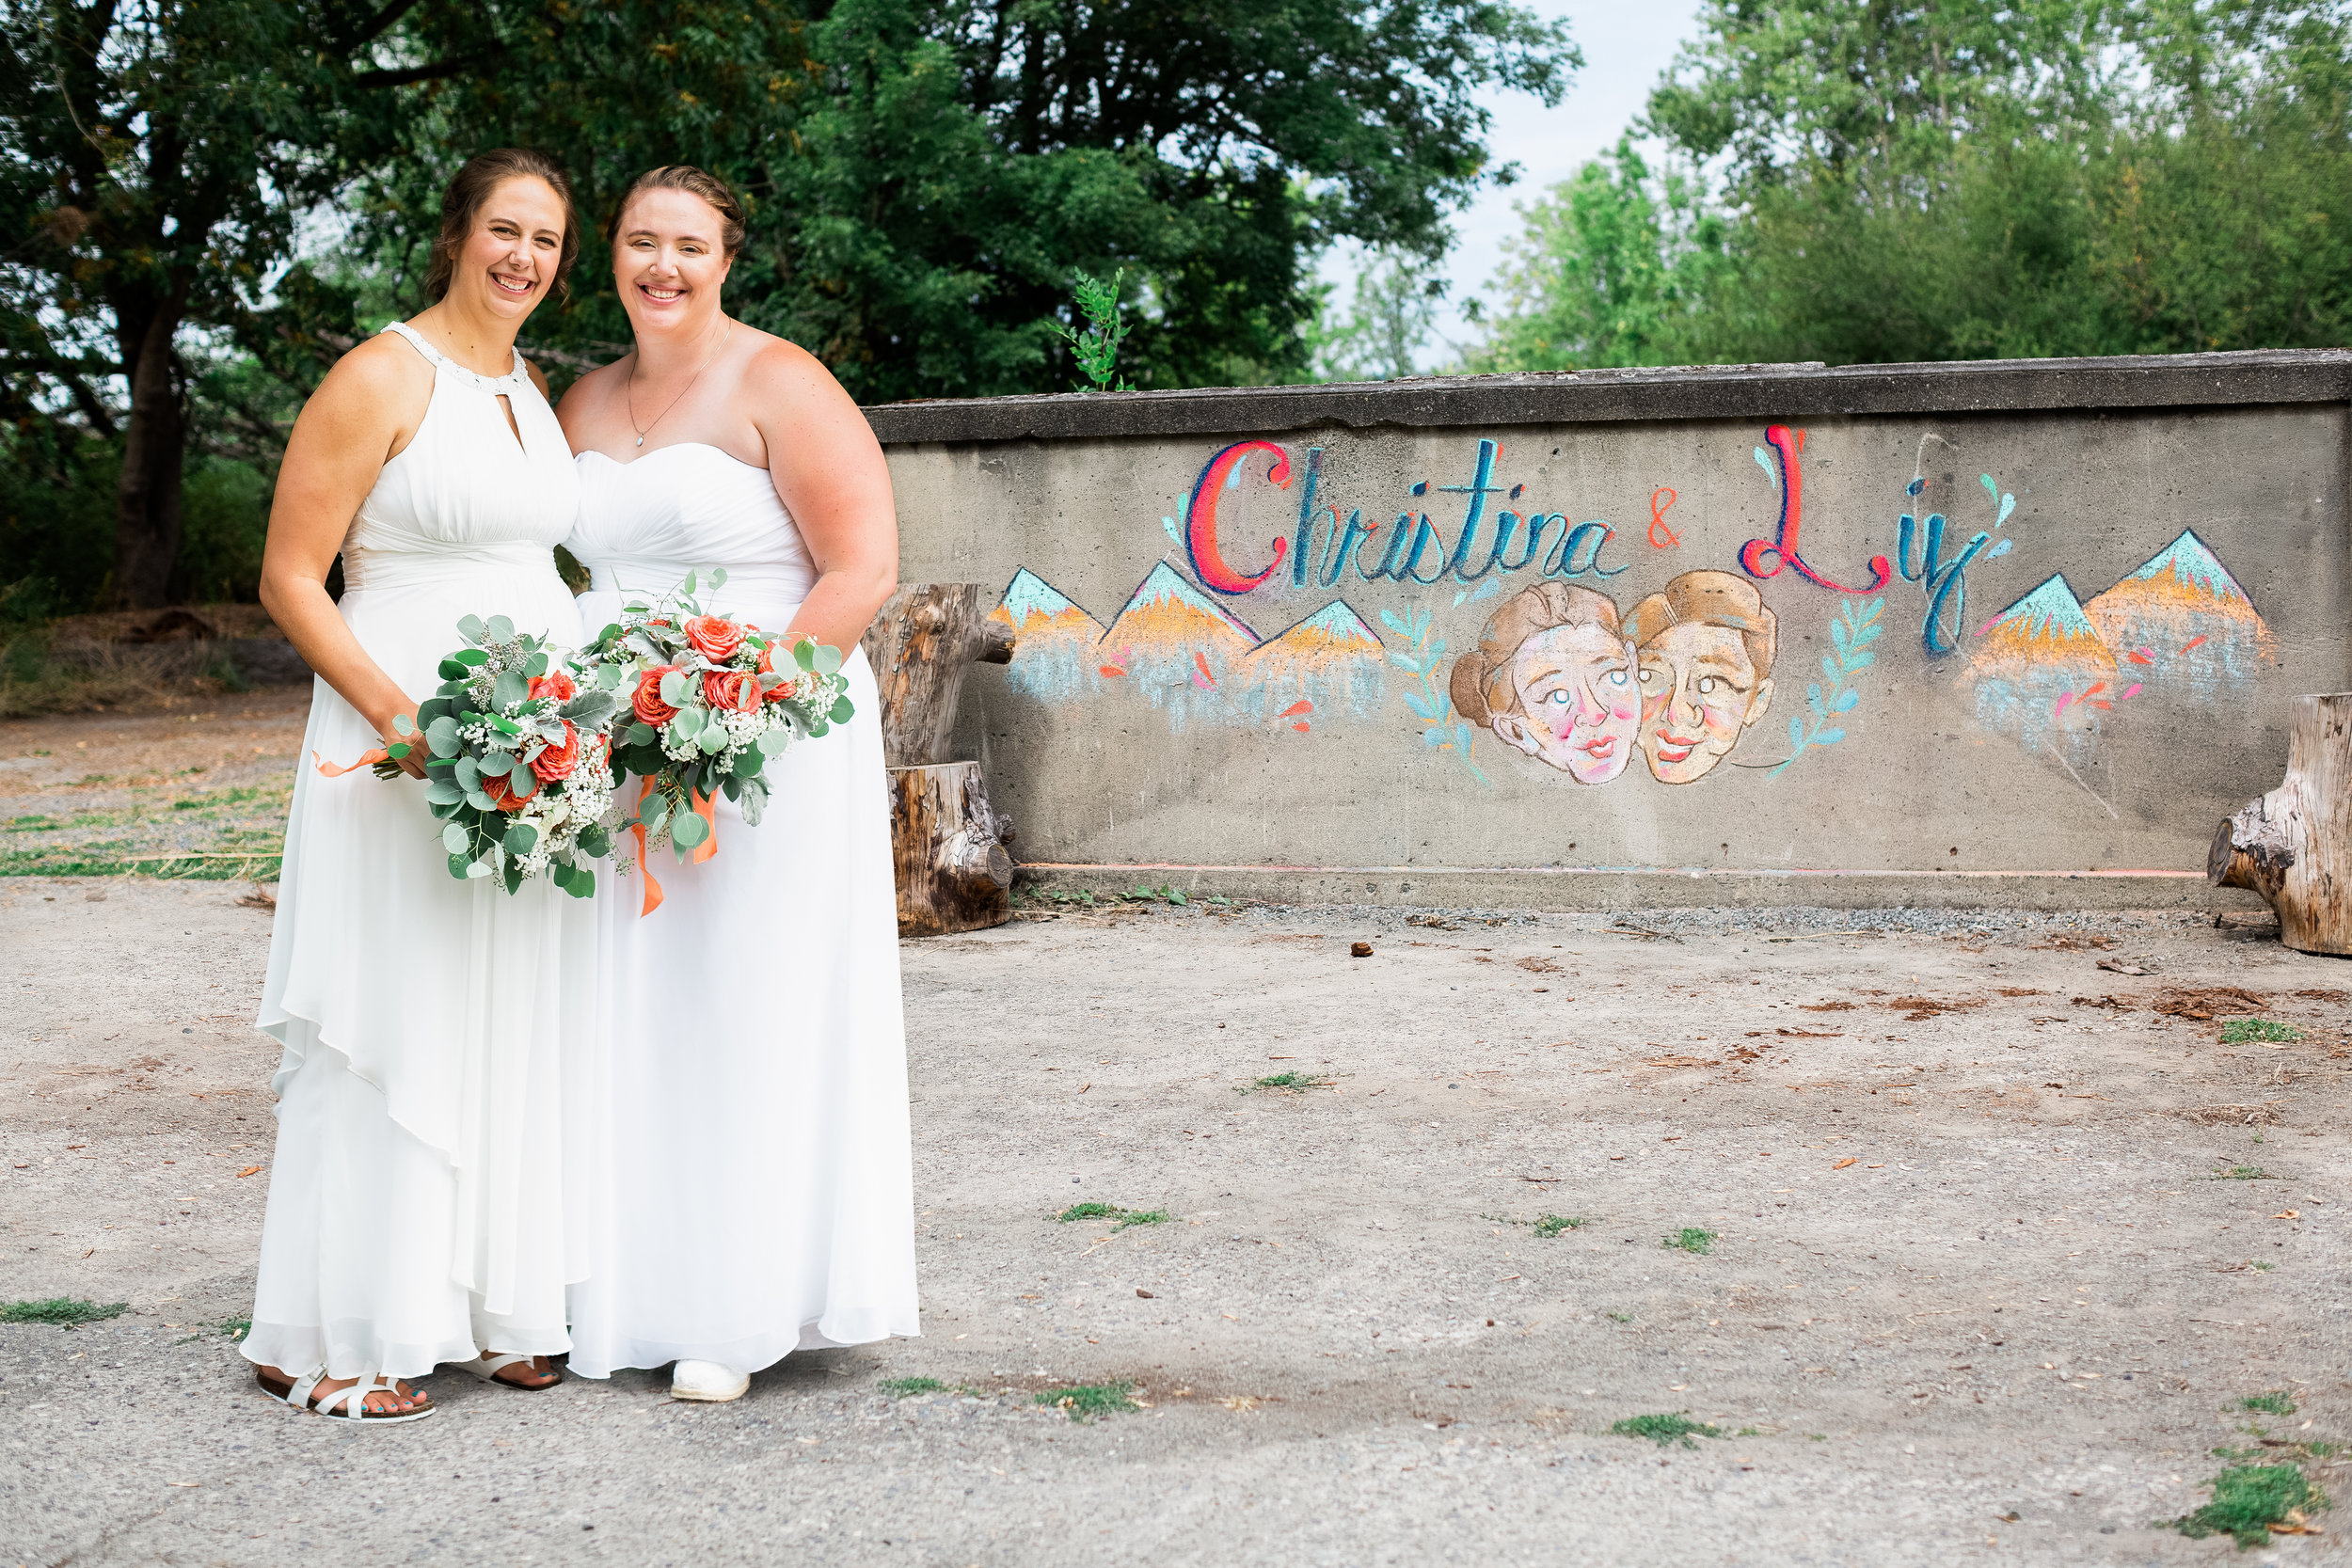 liz and christina lanning-first look and portraits-luther burbank park-janelle elaine photography-138_1.jpg.jpg